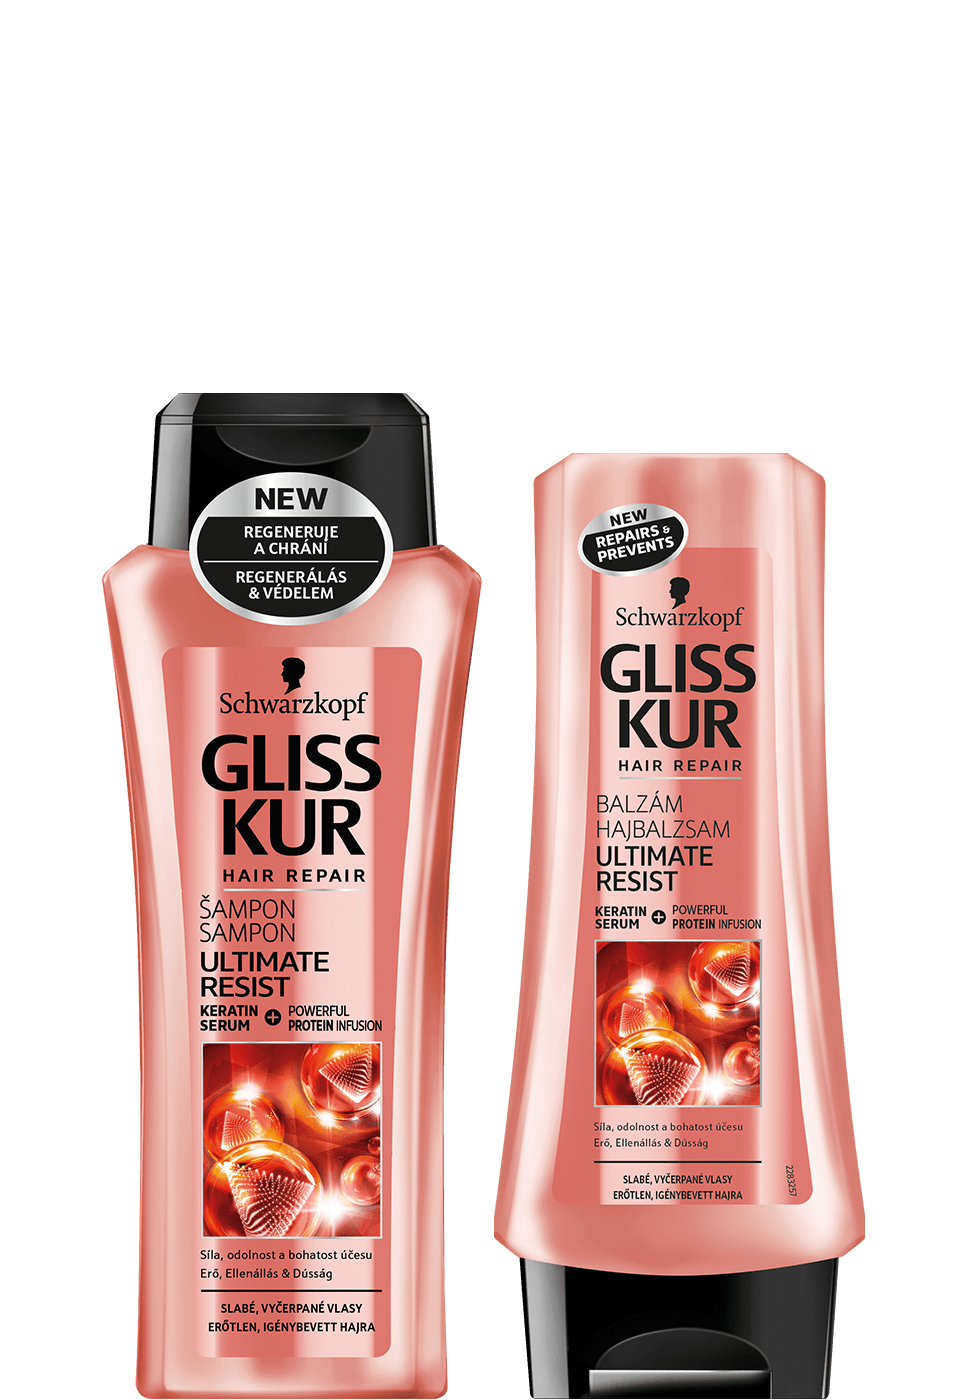 gliss_kur_de_ultimate_resist_packs_970x1400